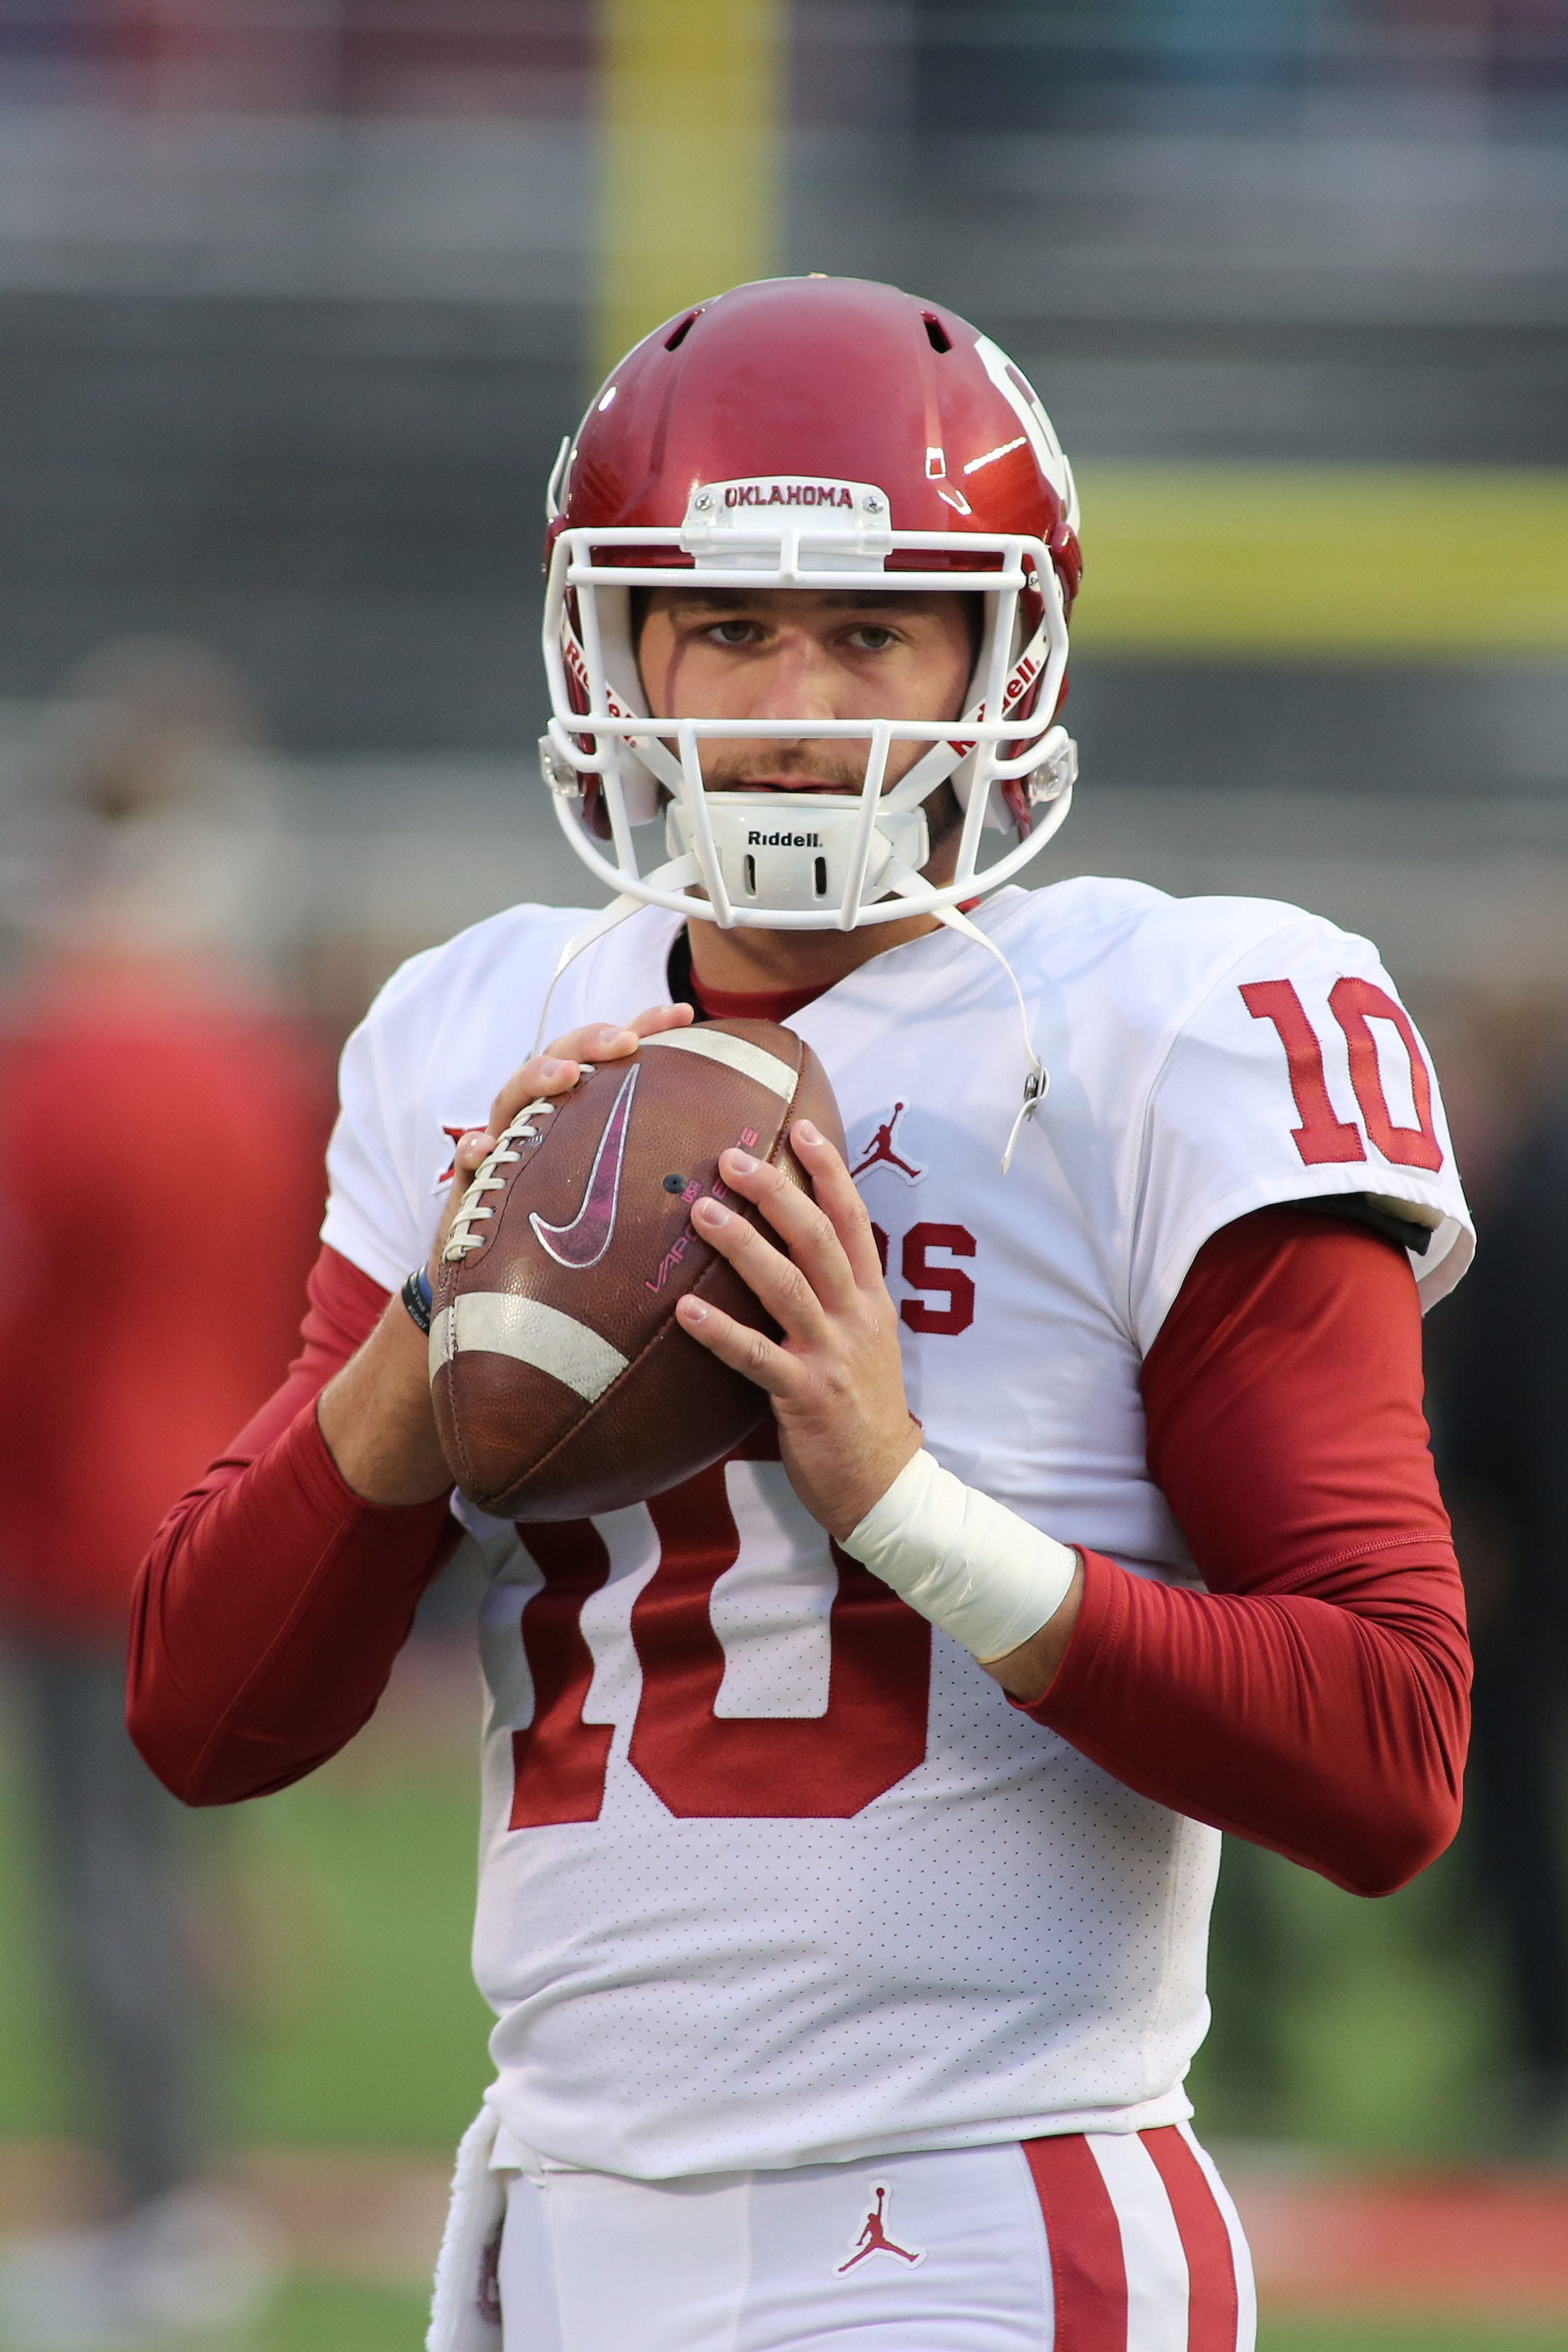 Oklahoma will grant QB Austin Kendall's transfer, now immediately eligible at West Virginia